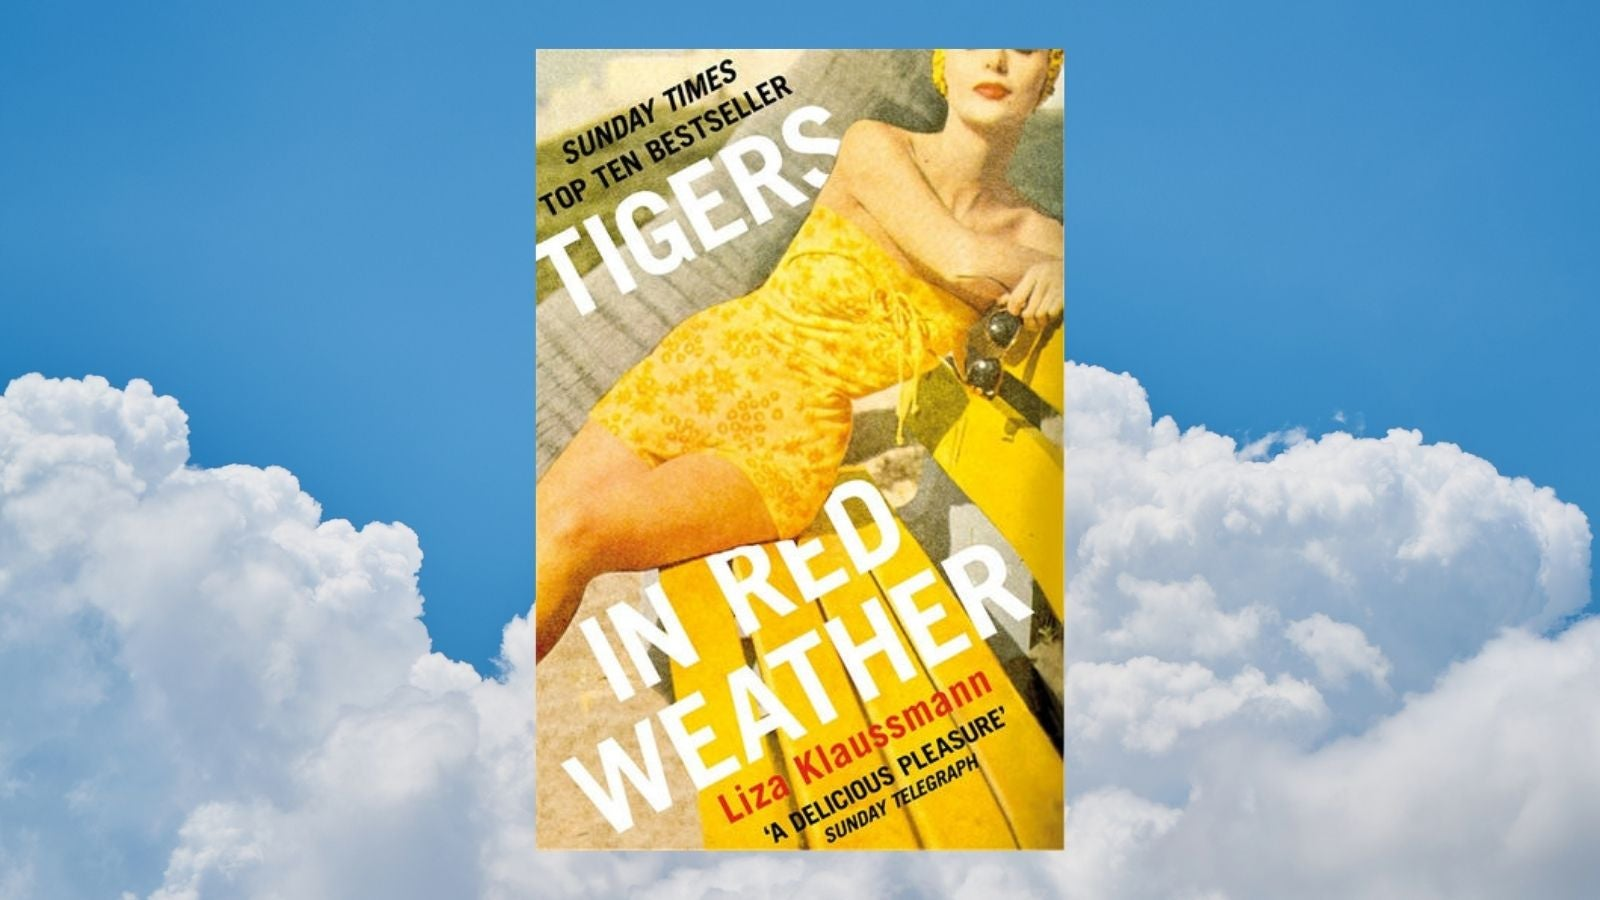 Tigers in Red Weather book cover with blue cloud background